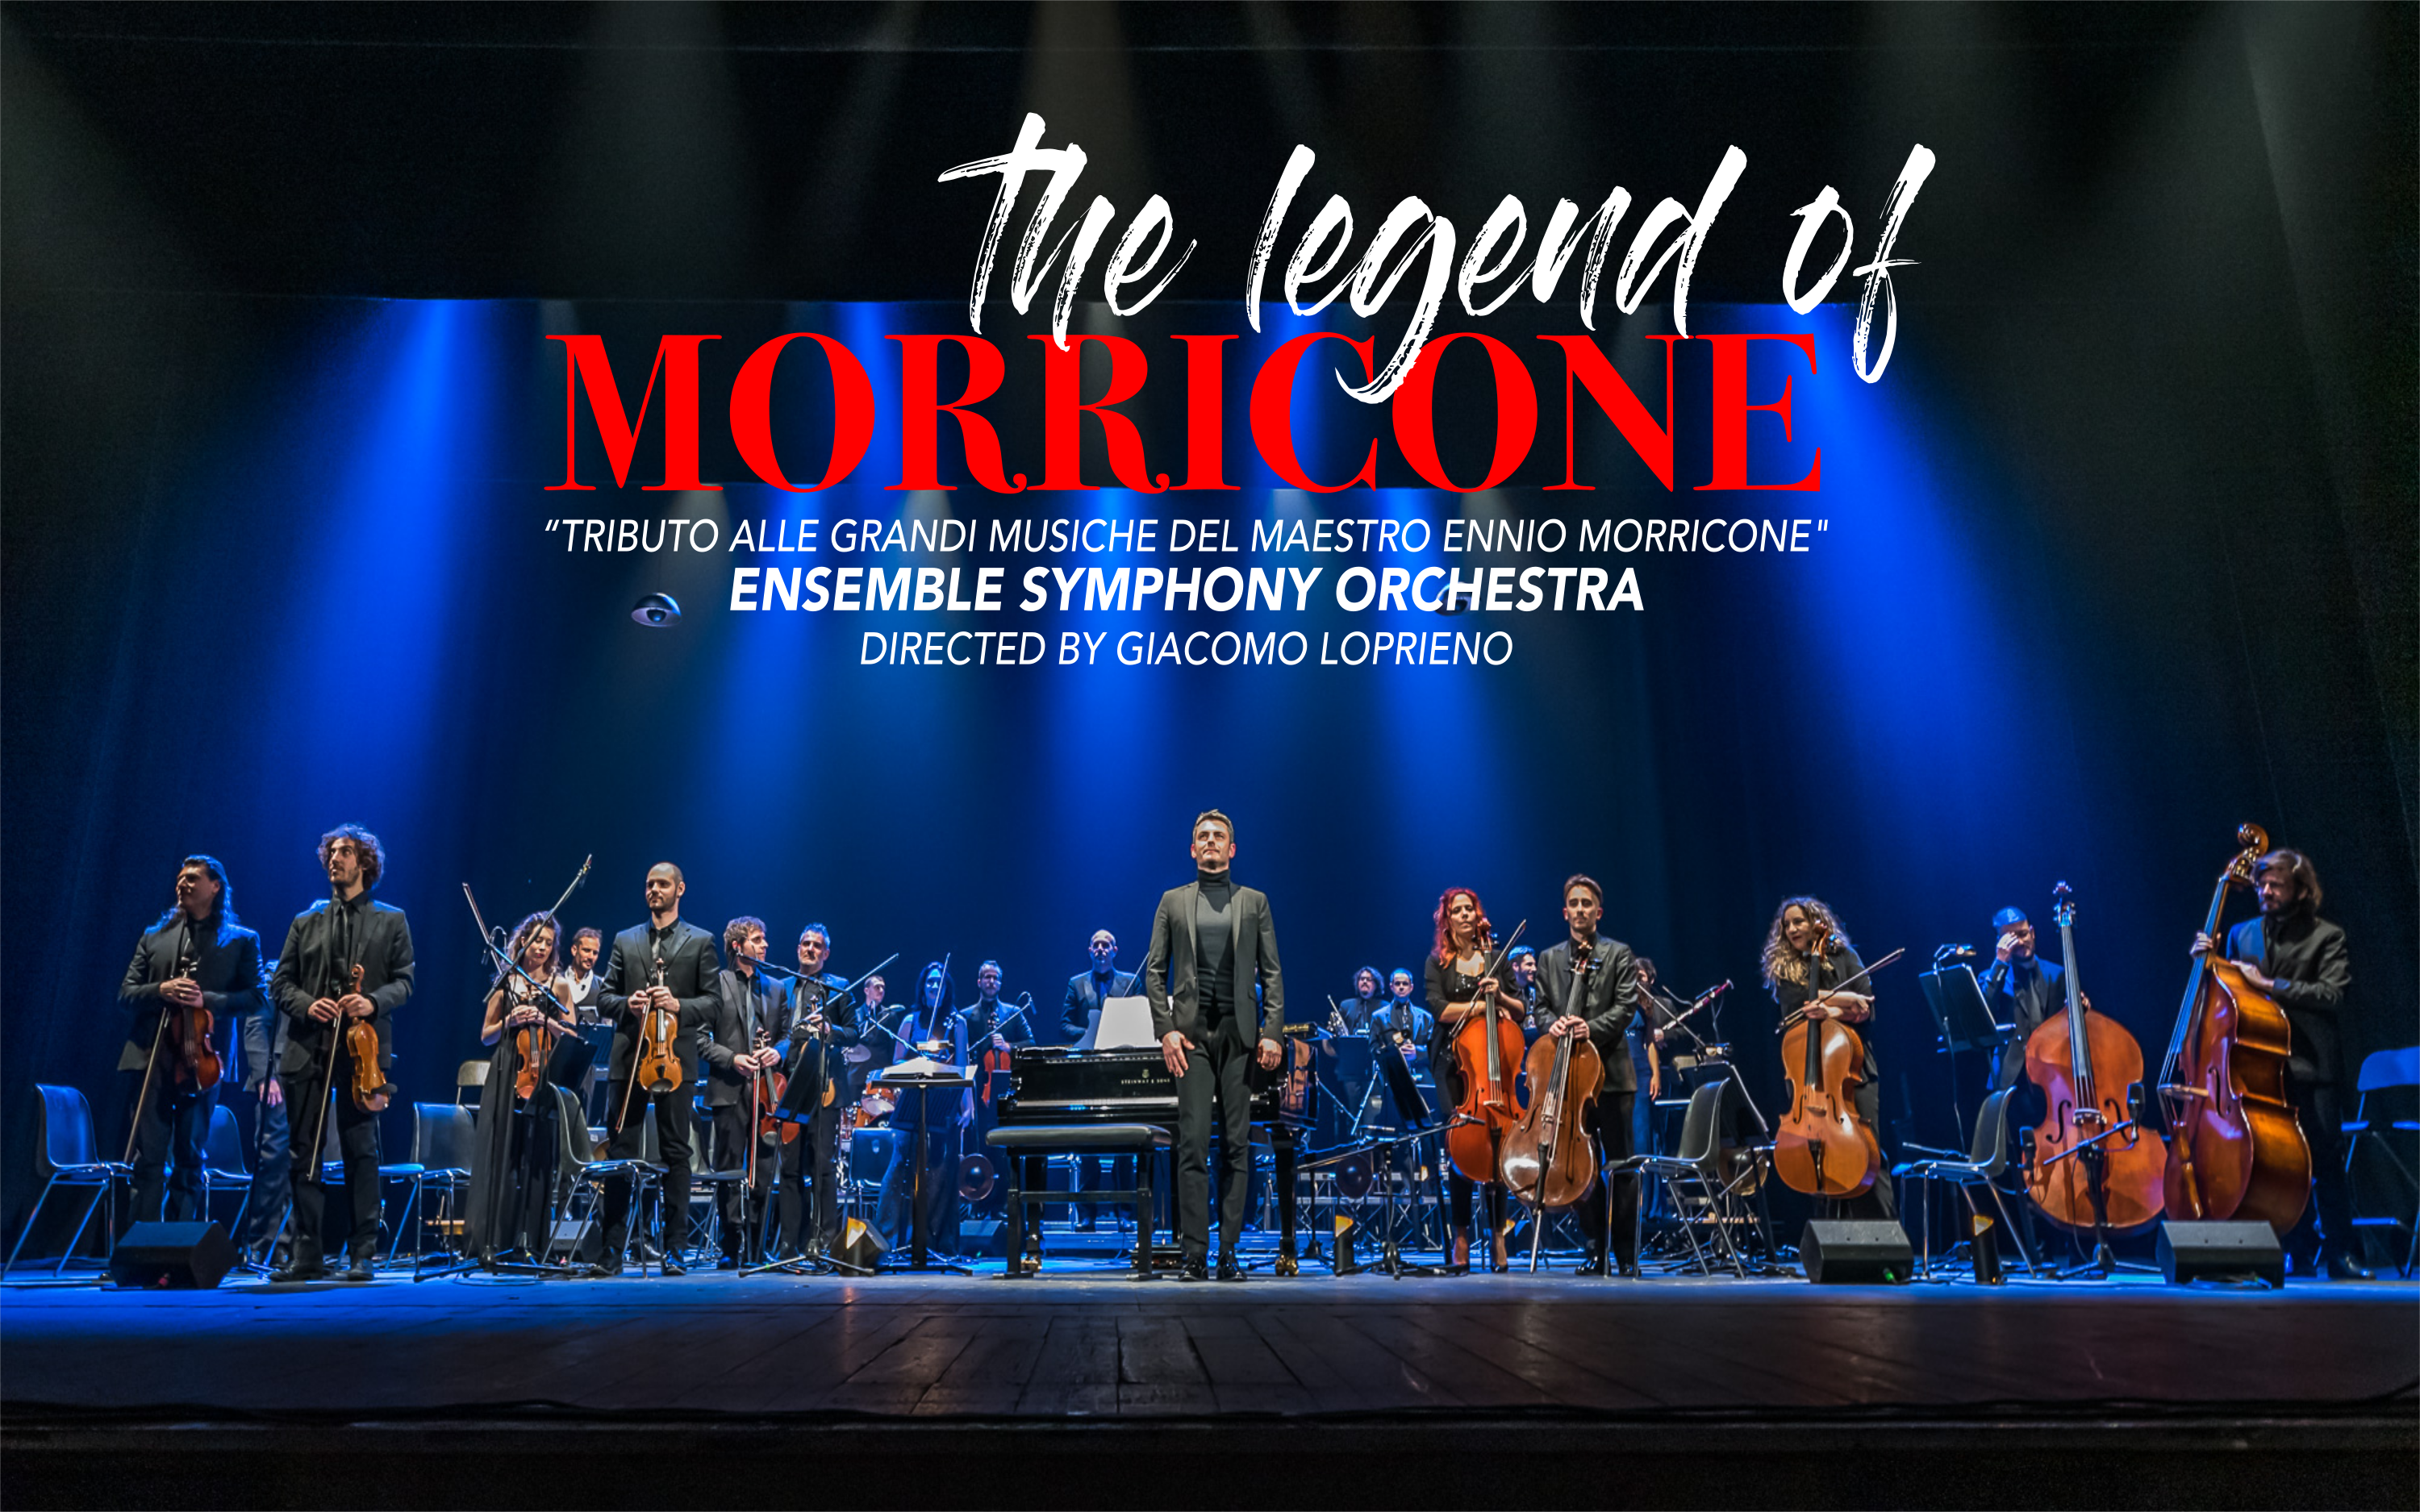 The Legend of Morricone- TOUR 2020/21